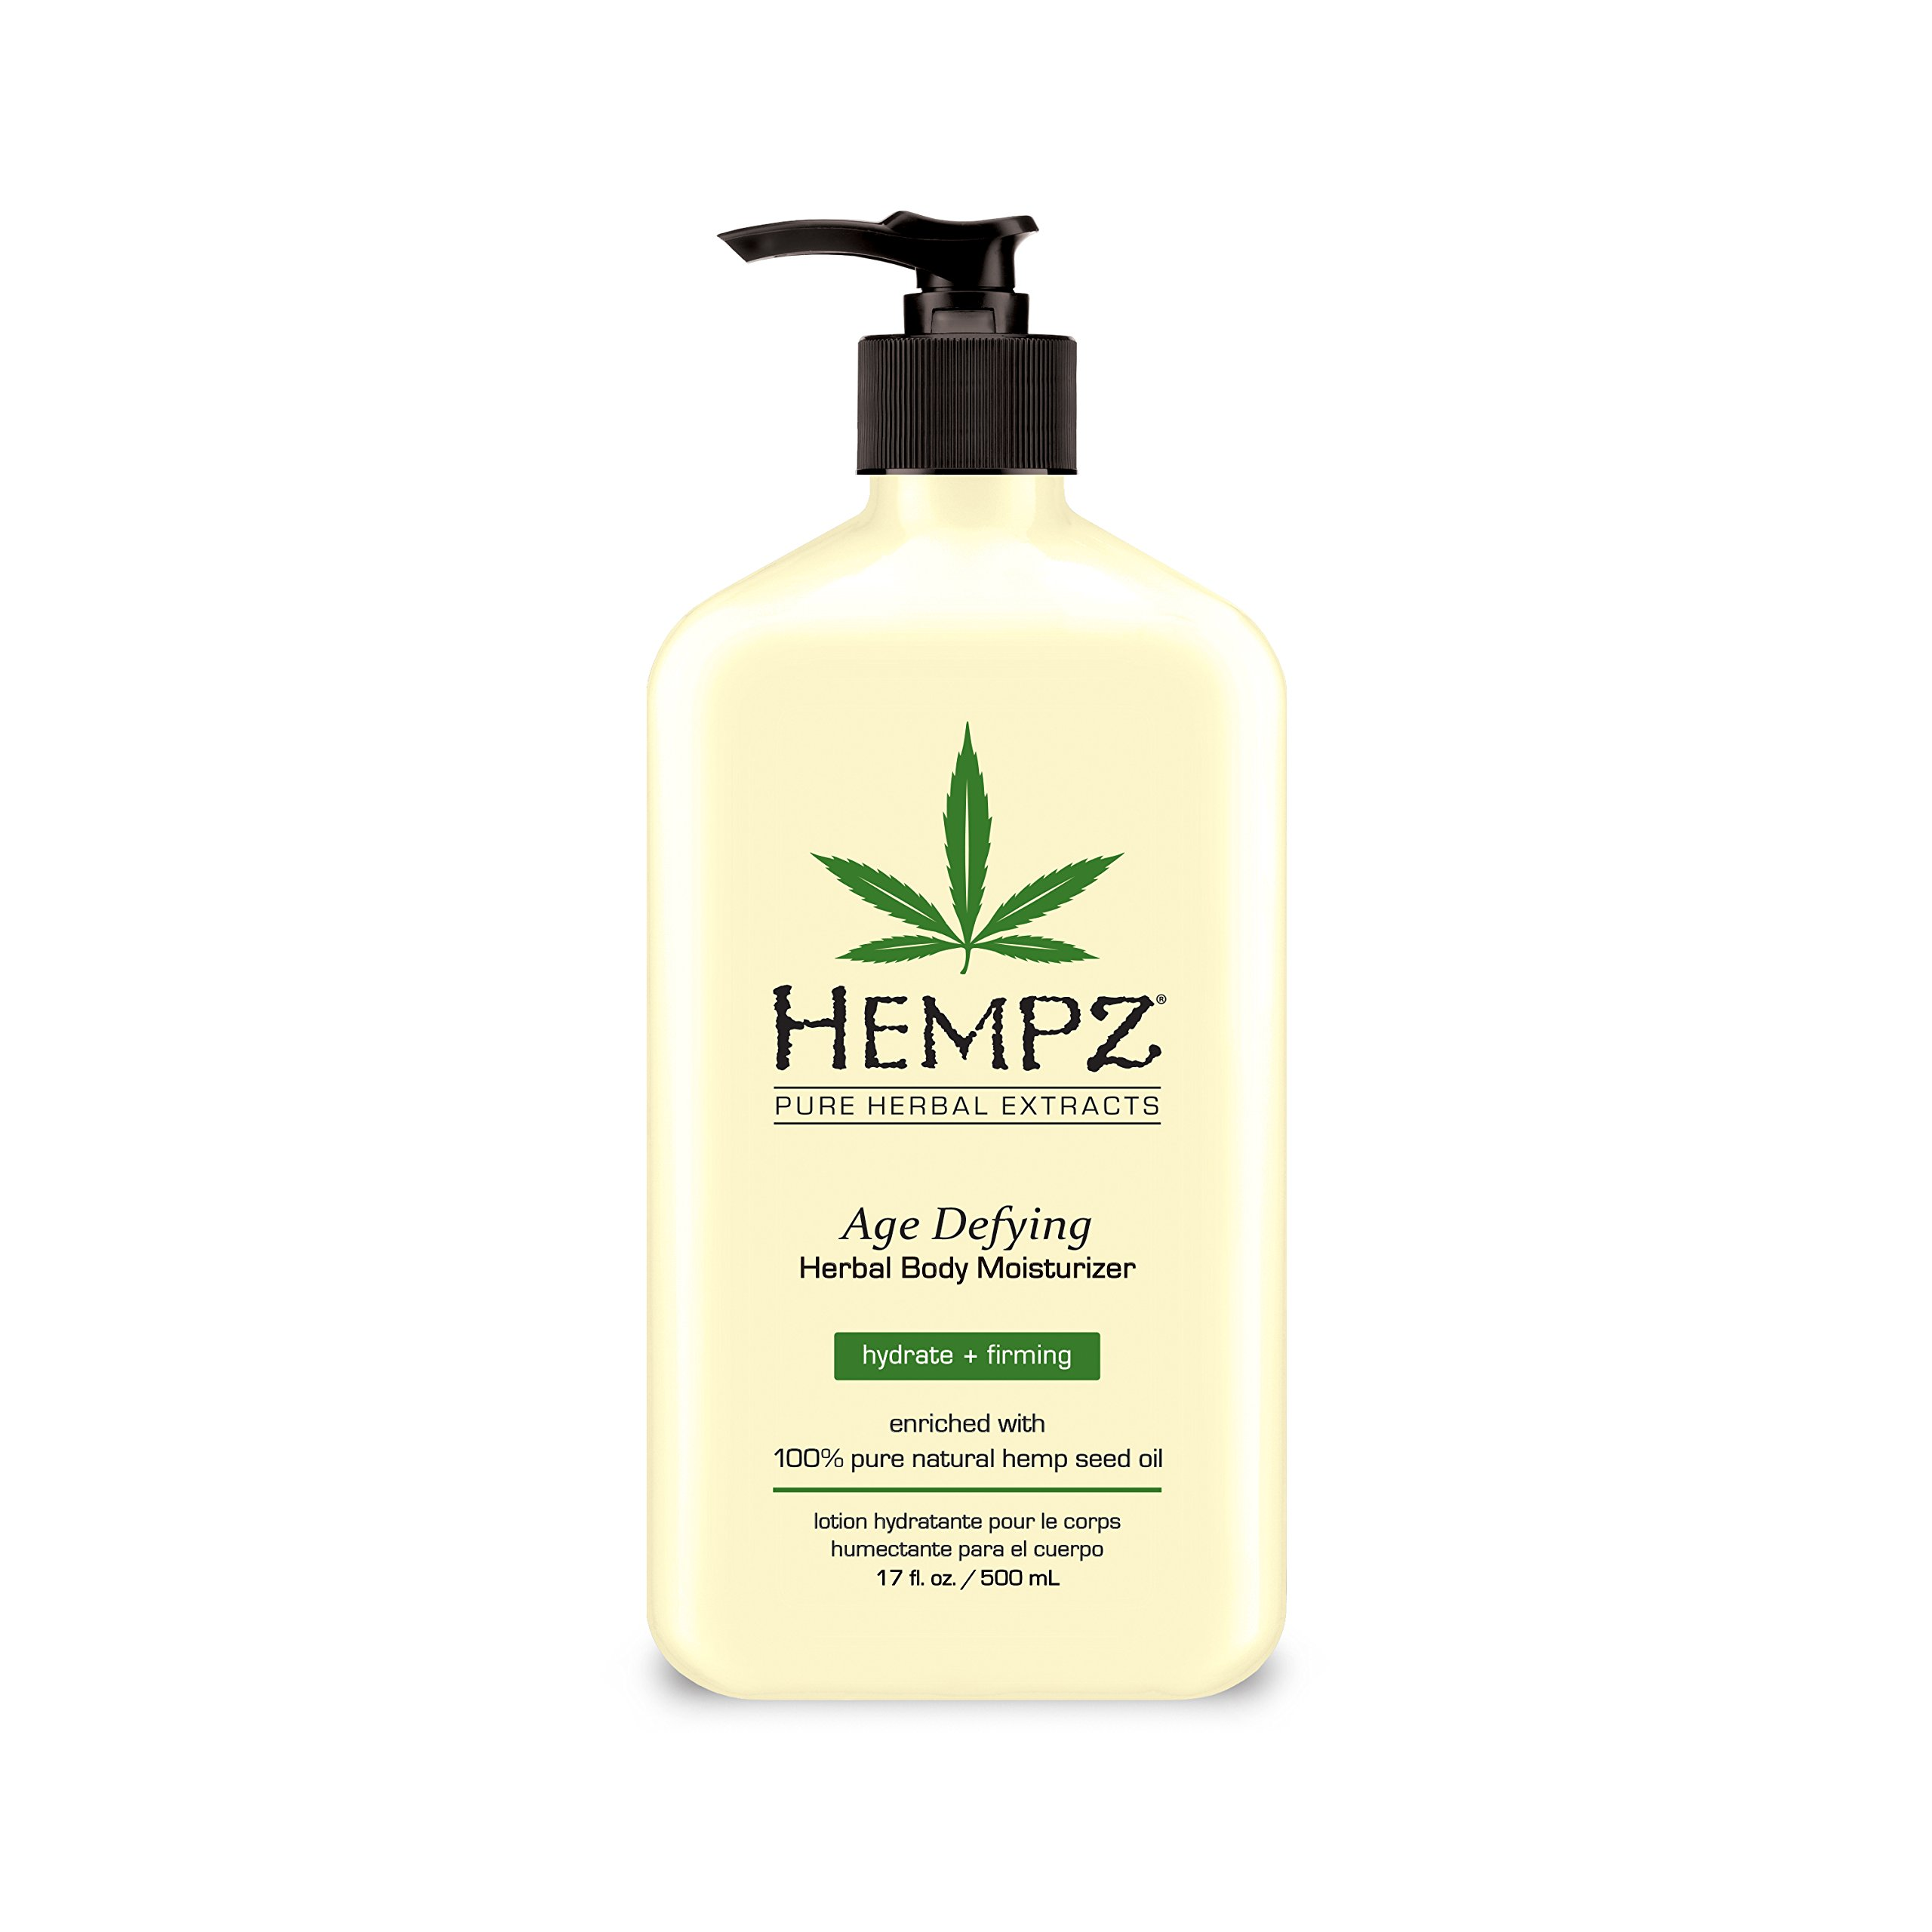 Hempz Body Moisturizer - Daily Herbal Moisturizer, Shea Butter Anti-Aging Body Moisturizer - Body Lotion, Hemp Extract Lotion - Skin Care Products, 100% Pure Organic Hemp Seed Oil